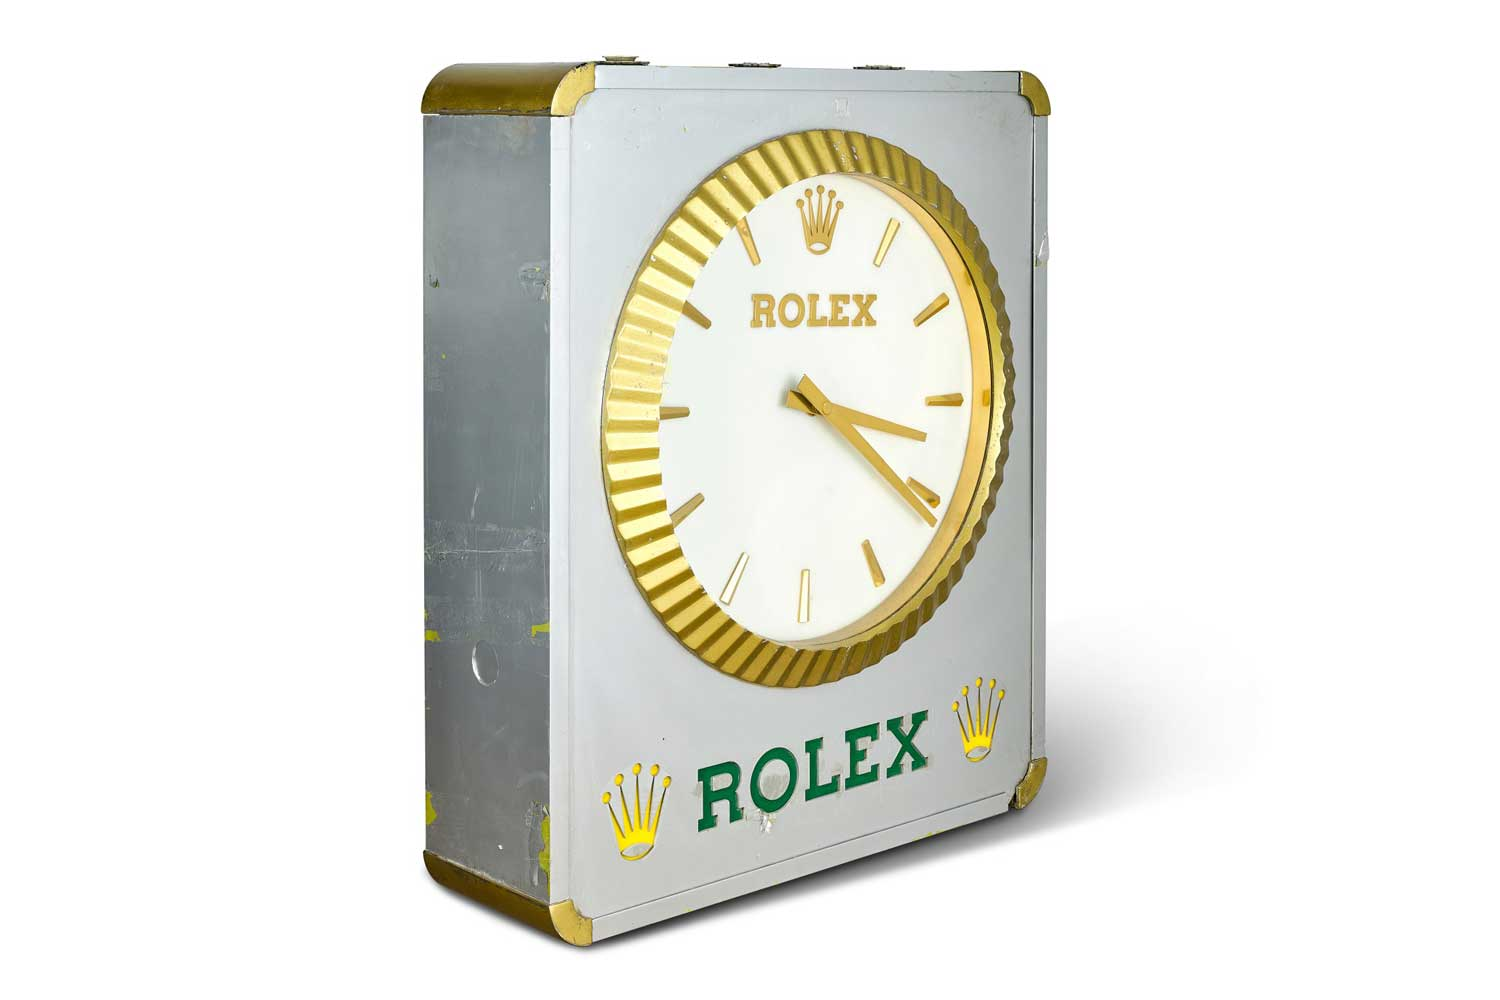 Lot 8088: Rolex - A stainless steel and brass building sign clock, circa 1970